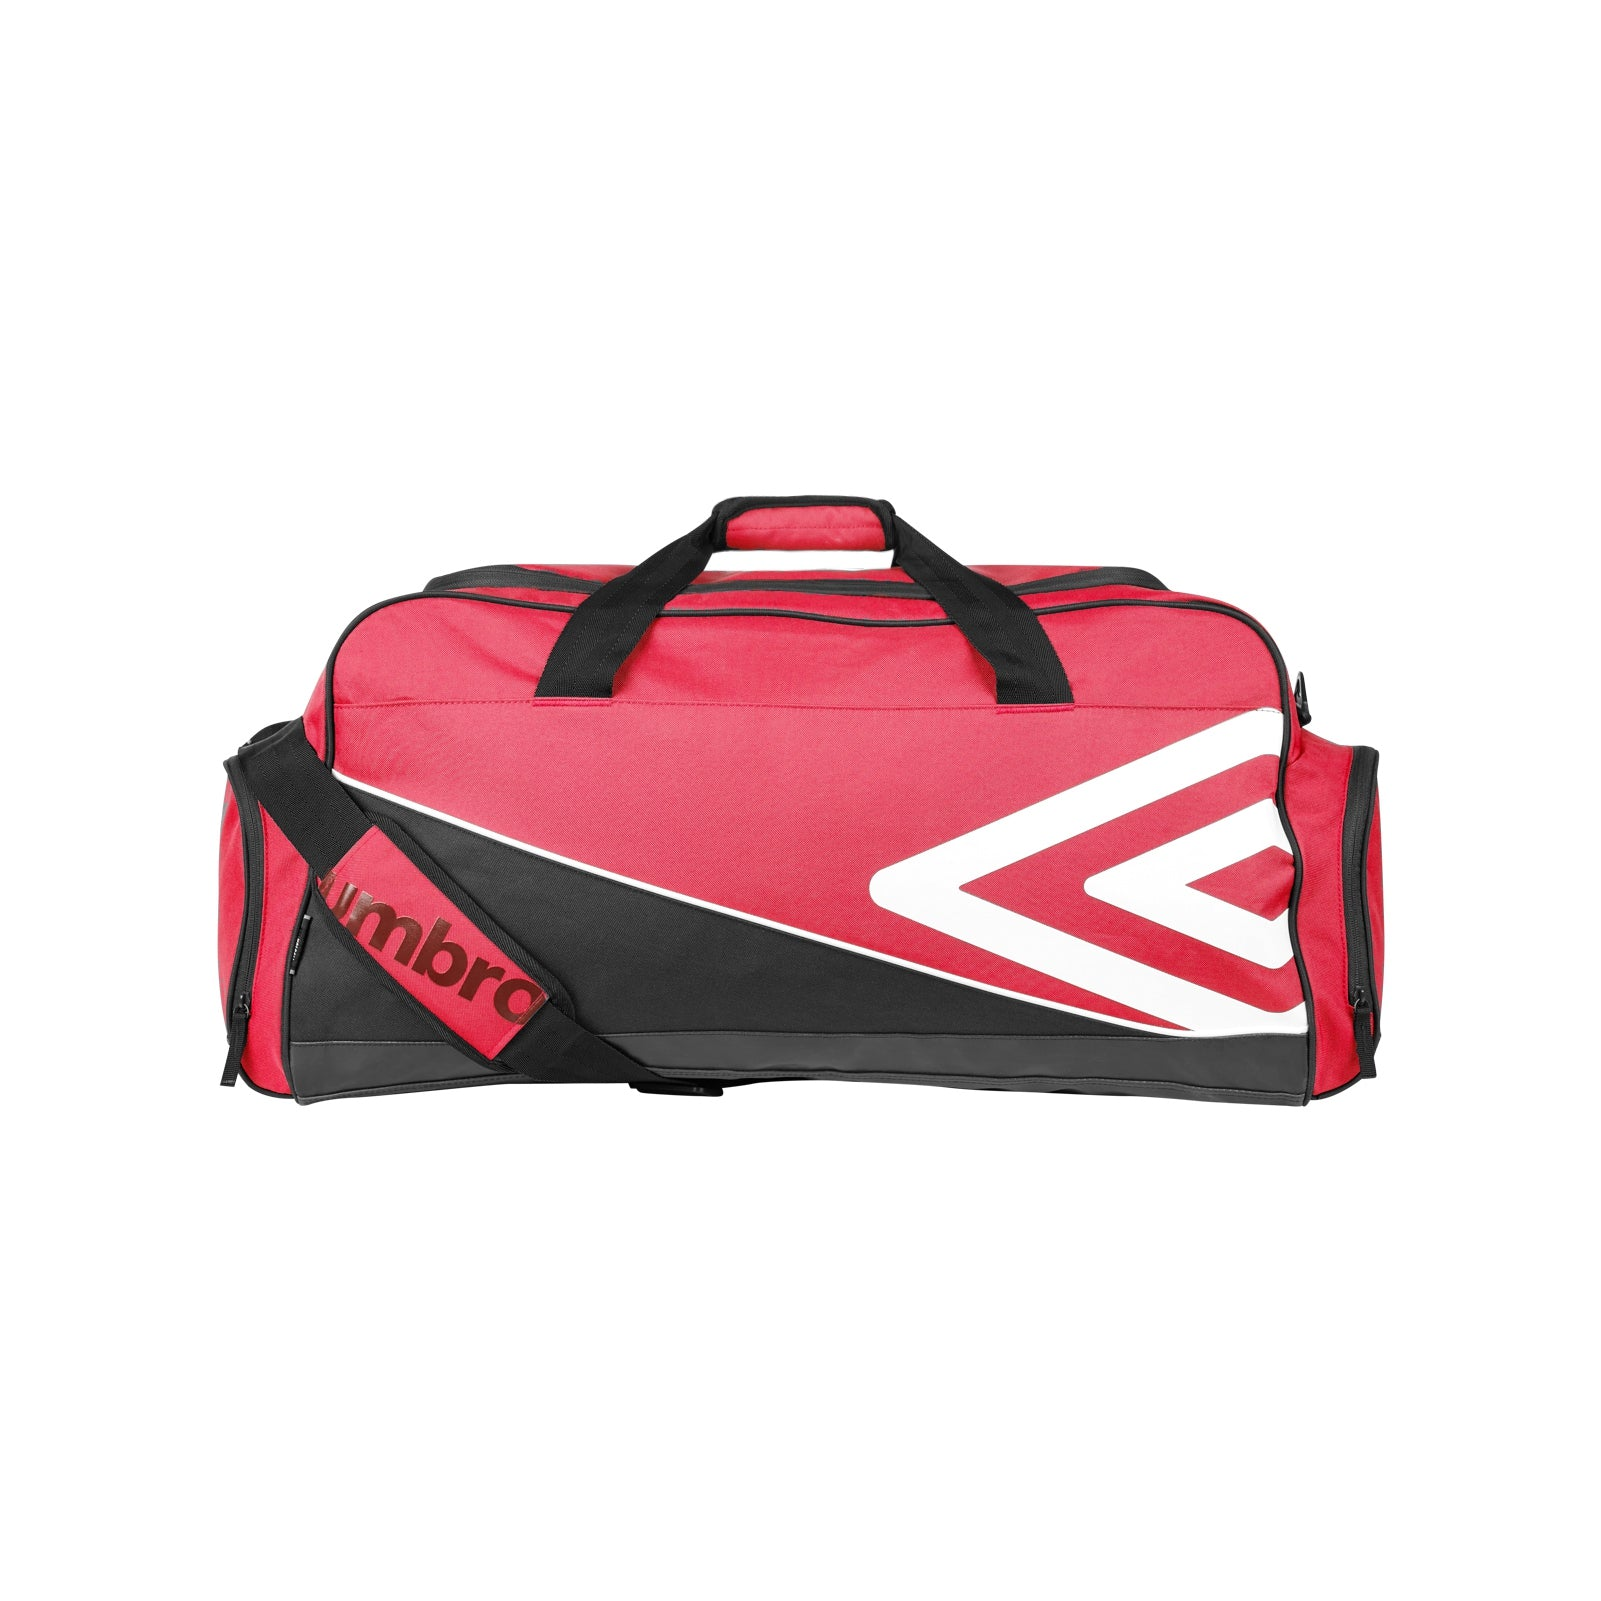 Umbro Pro Training Holdall in red with large white double diamond logo, and 2 end pockets